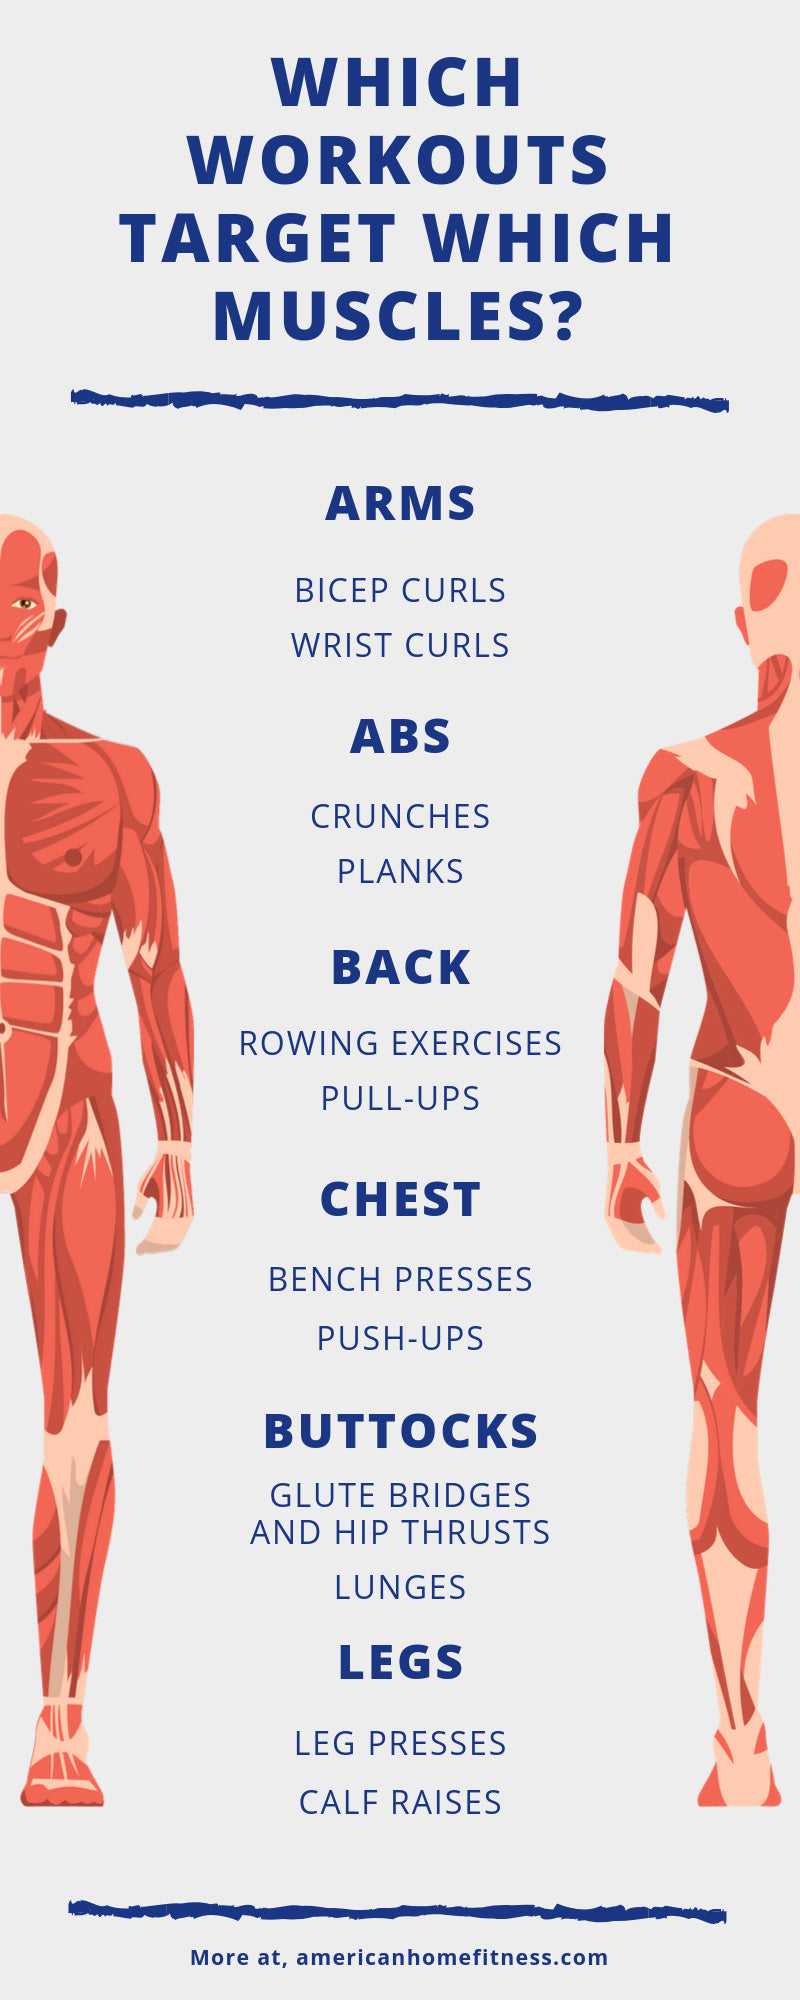 Which Workouts Target Which Muscles infographic